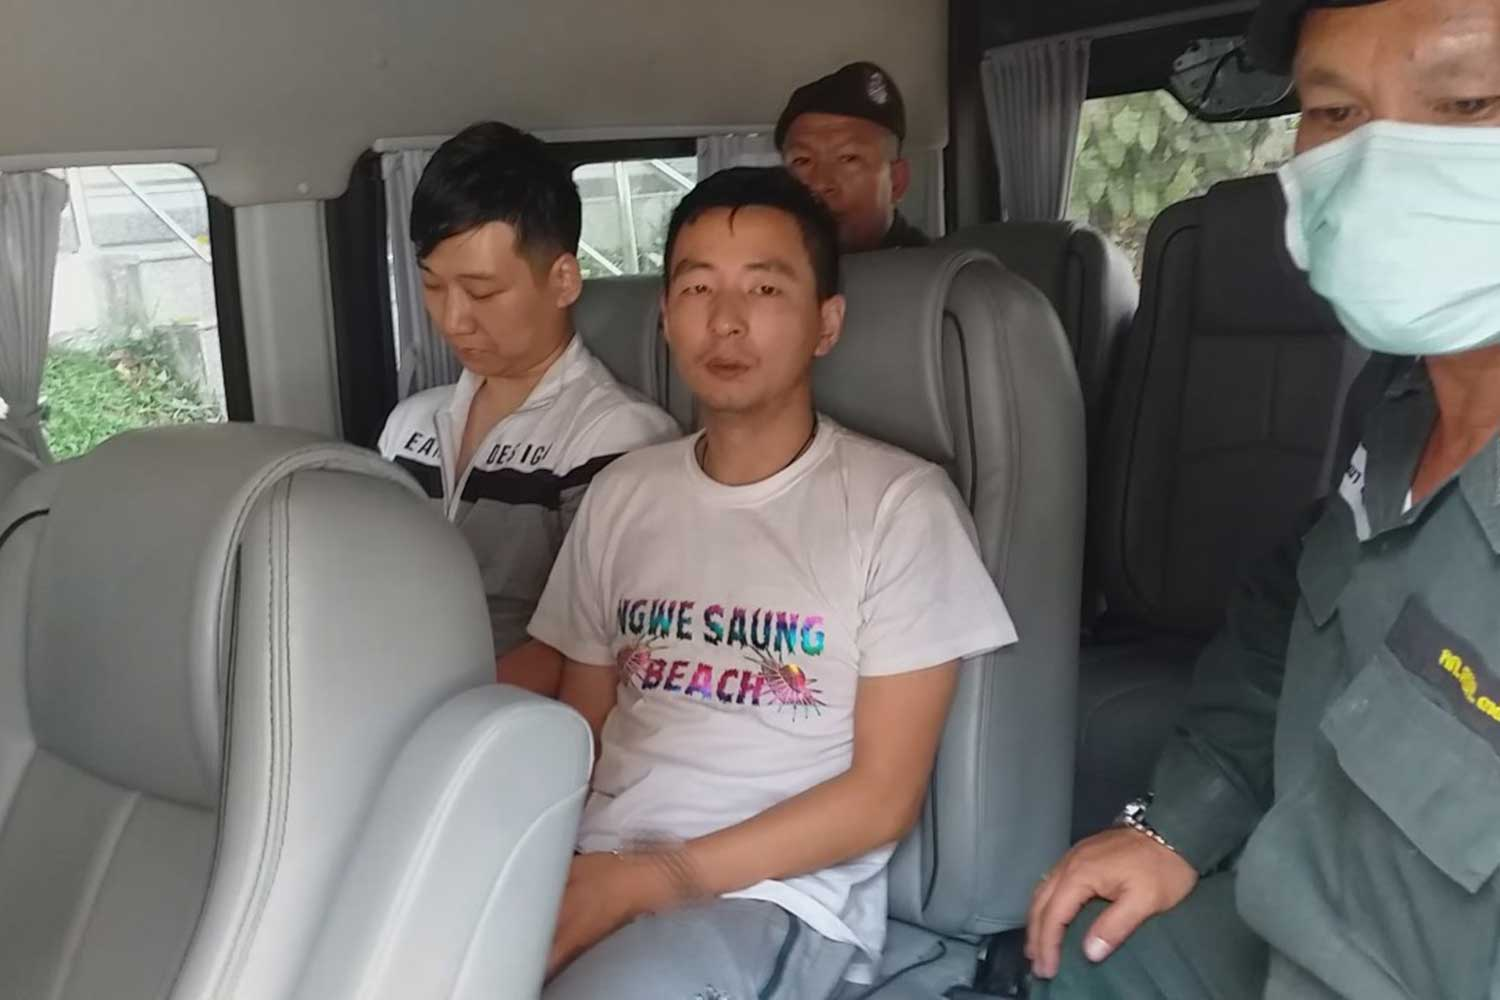 Chinese nationals Fan Gang Gang and Qin Miao are taken from Myanmar's Myawaddy border town to Mae Sot district of Tak on Wednesday following their arrest in Rangoon. Myanmar immigration police have reportedly now arrested the other two Chinese suspects in the Ping River suitcase murder case. (Photo by Assawin Pinitwong)